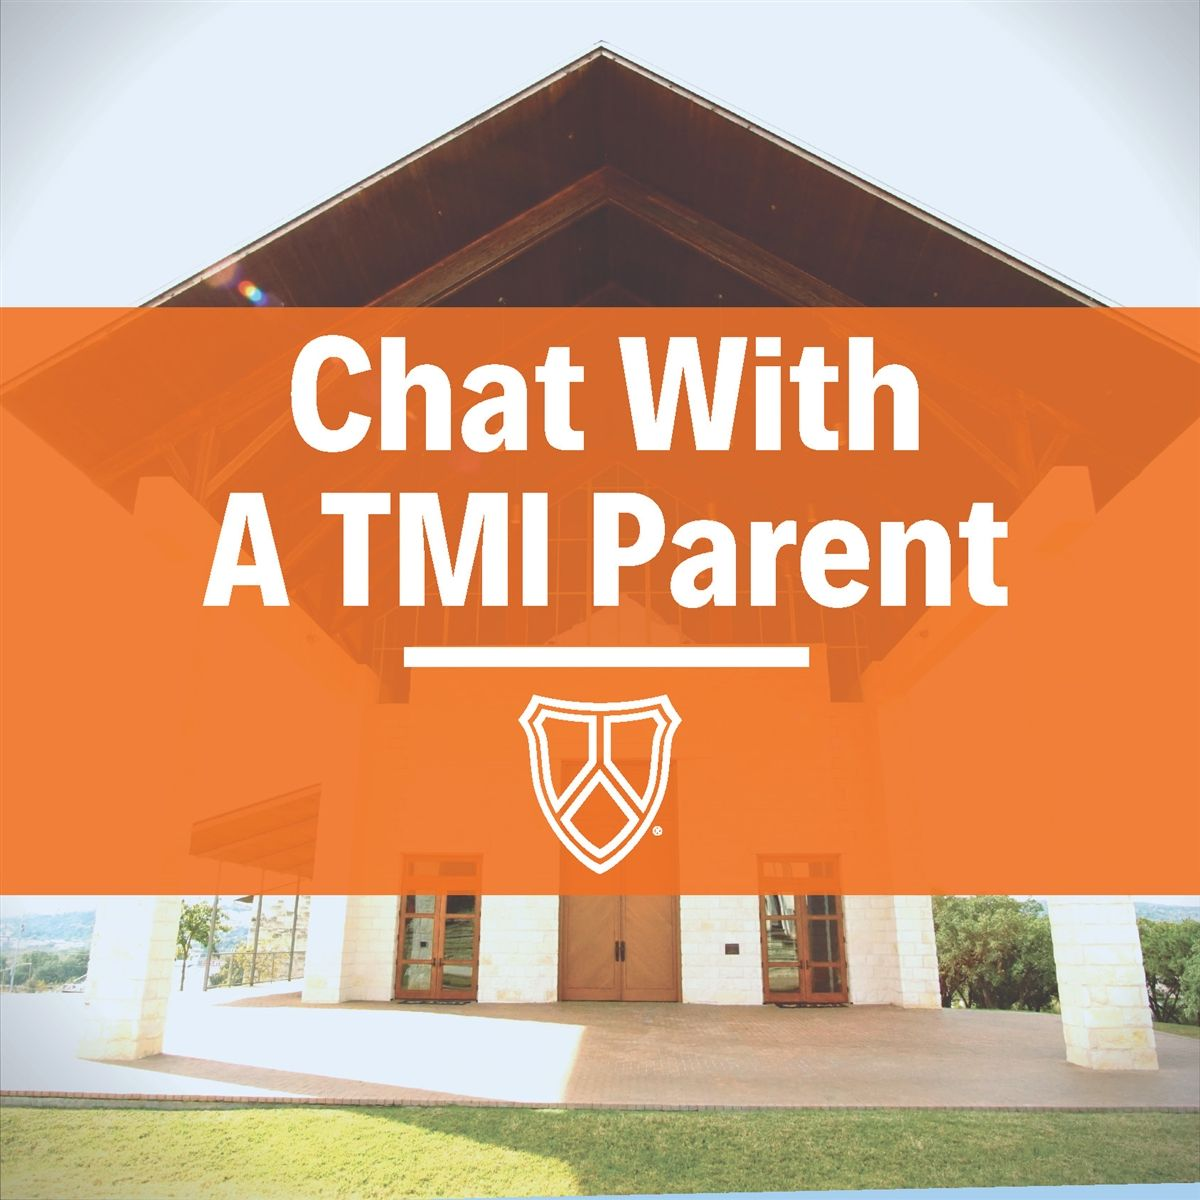 Chat With a TMI Parent